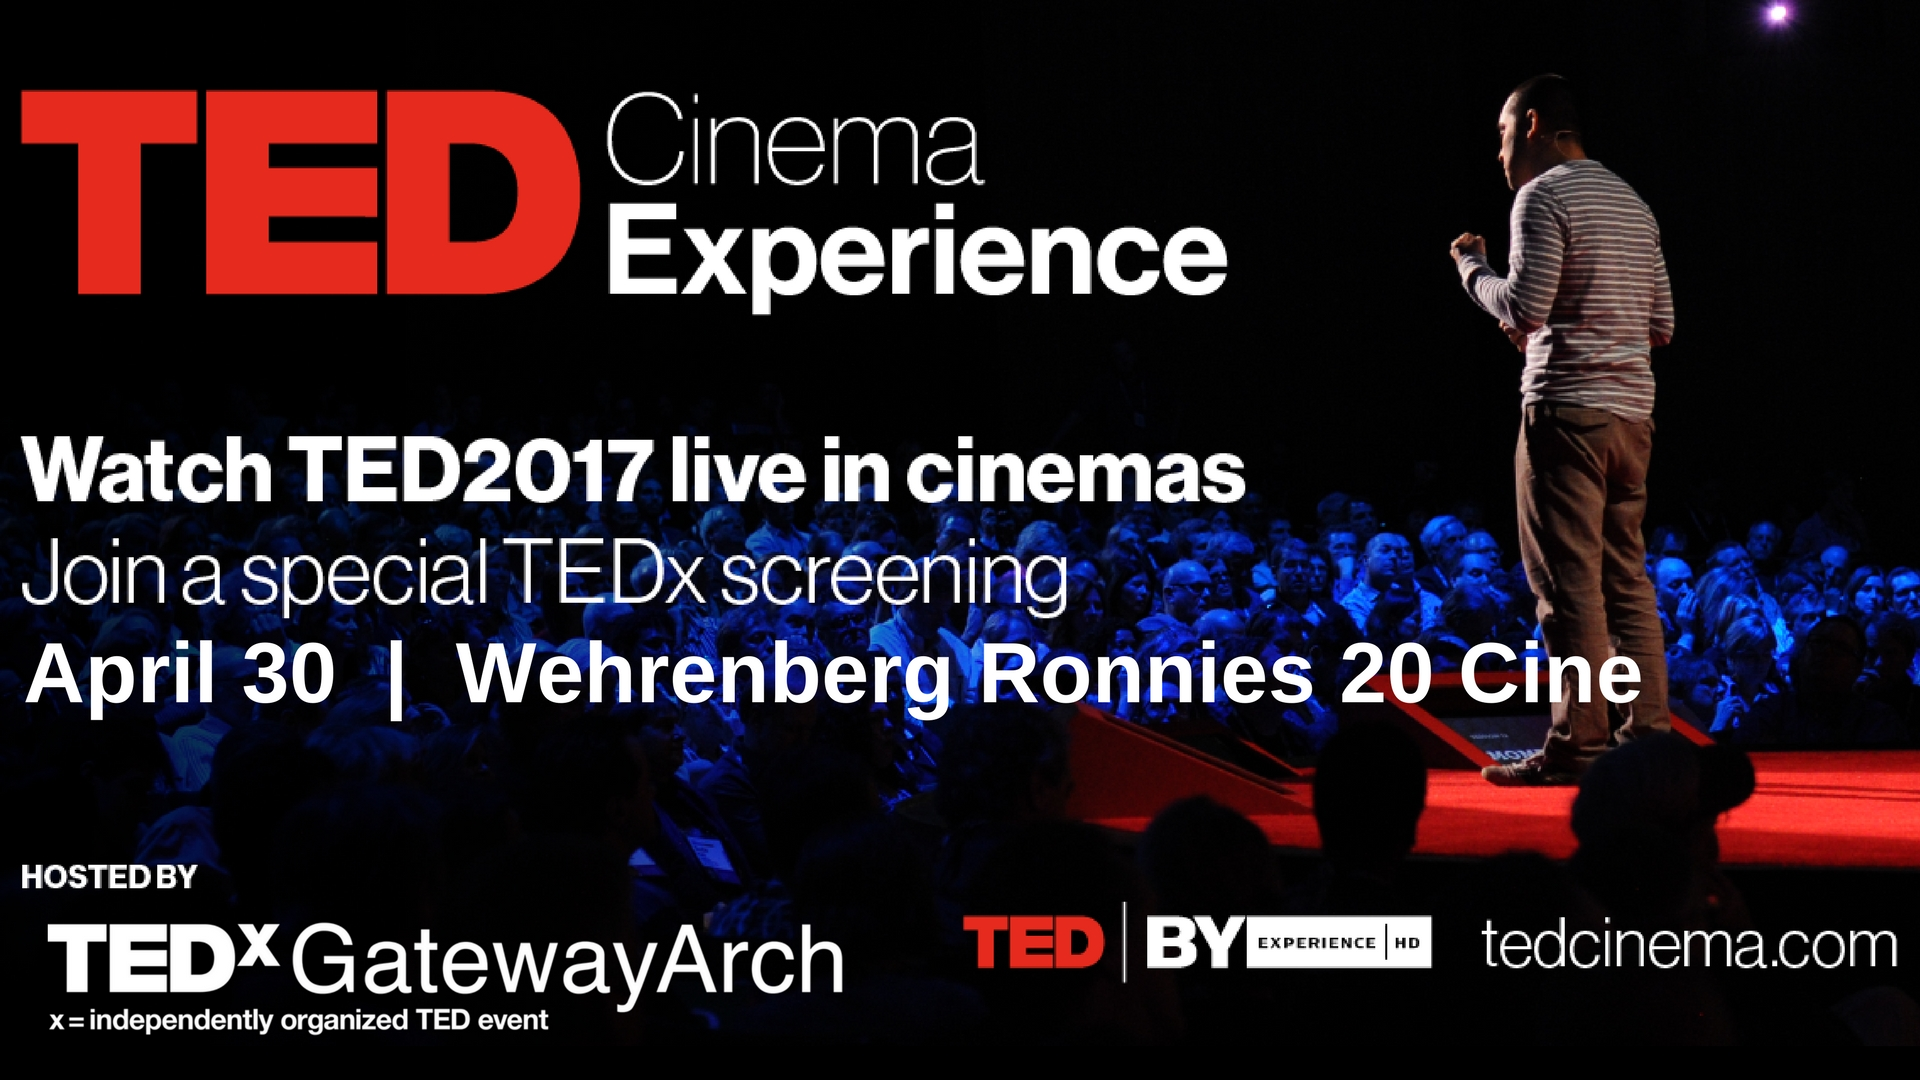 Watch_TED2017_live_in_cinemas.jpg